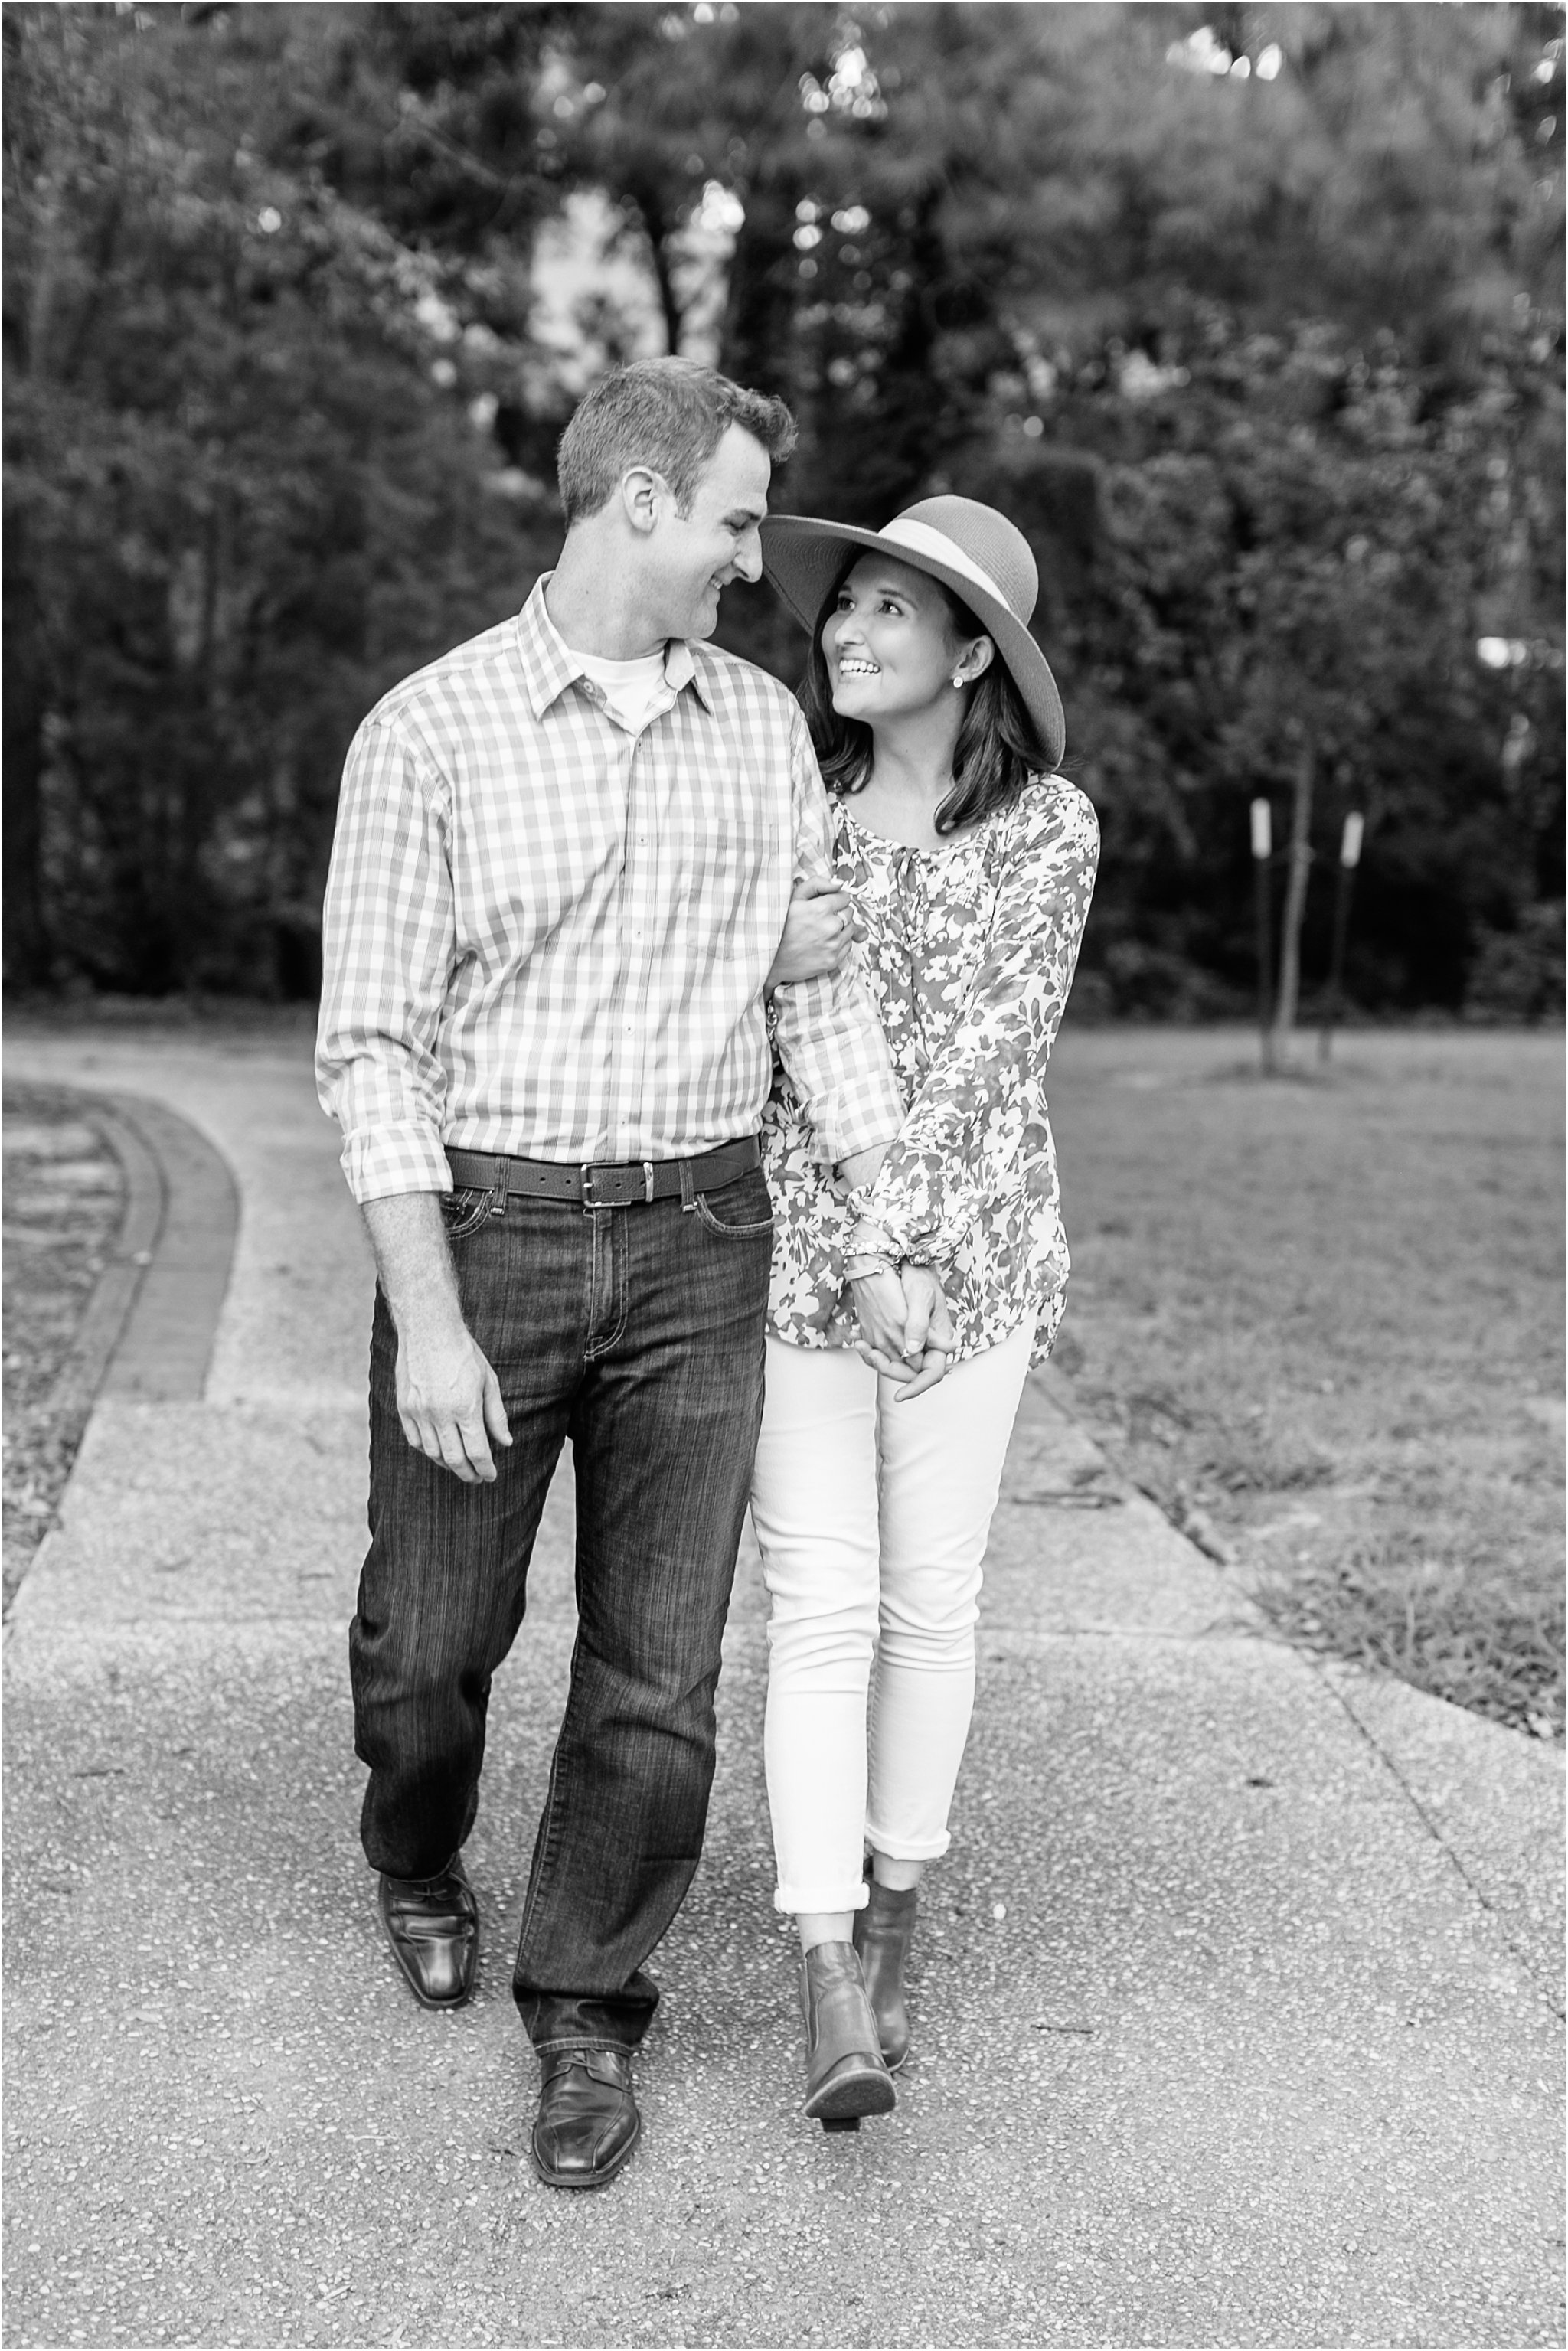 jessica_ryan_photography_virginia_virginia_beach_francis_land_house__portraits_bride_and_groom_beloved_historical_home_engagement_portraits_candid_authentic_engagements_2738